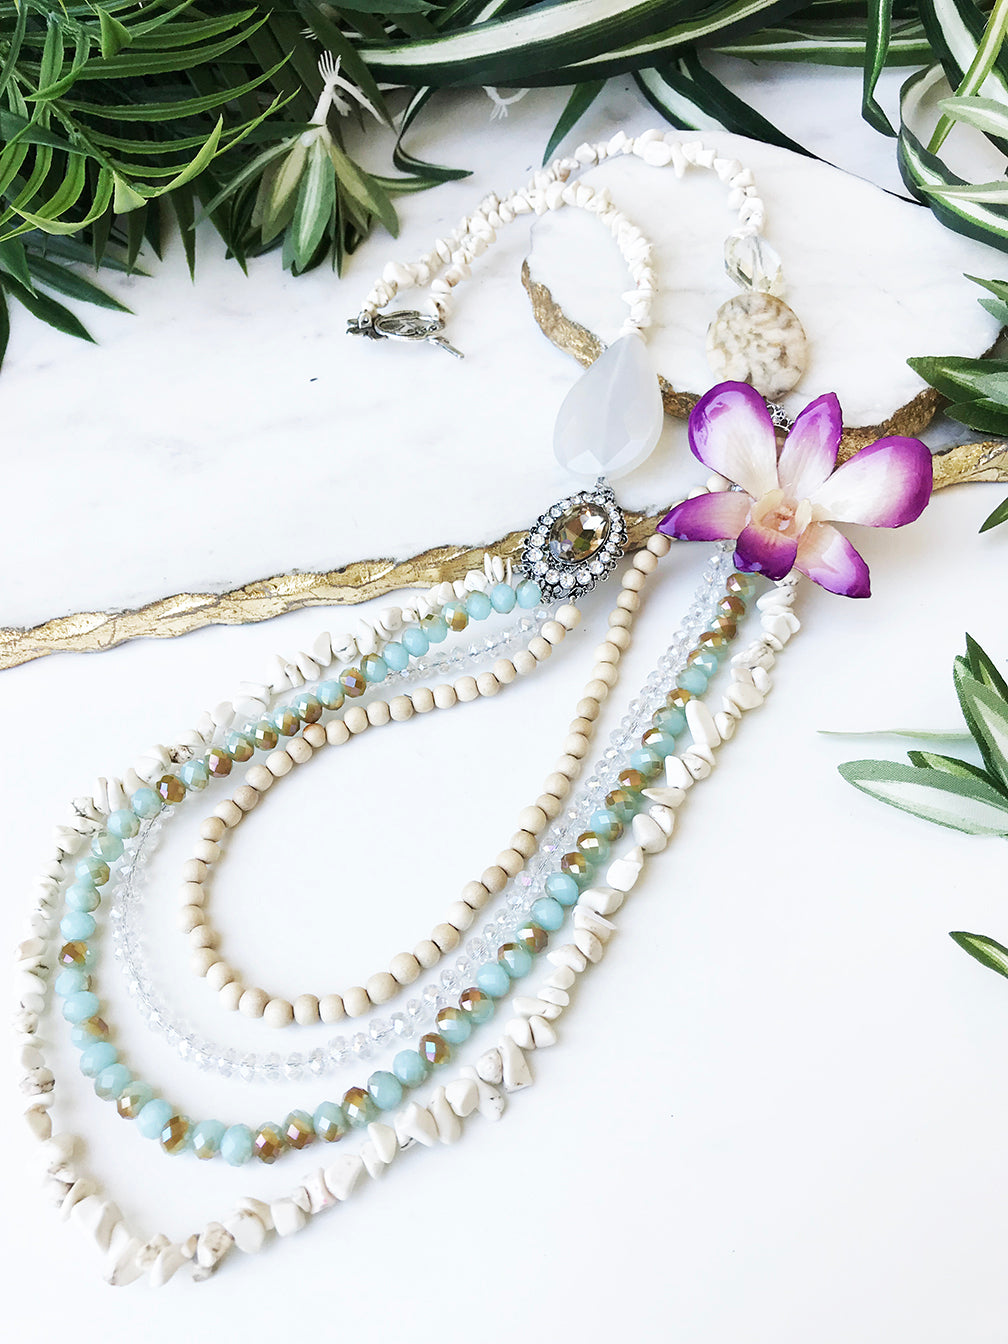 bloom tiered necklace - BL-T-009-NL